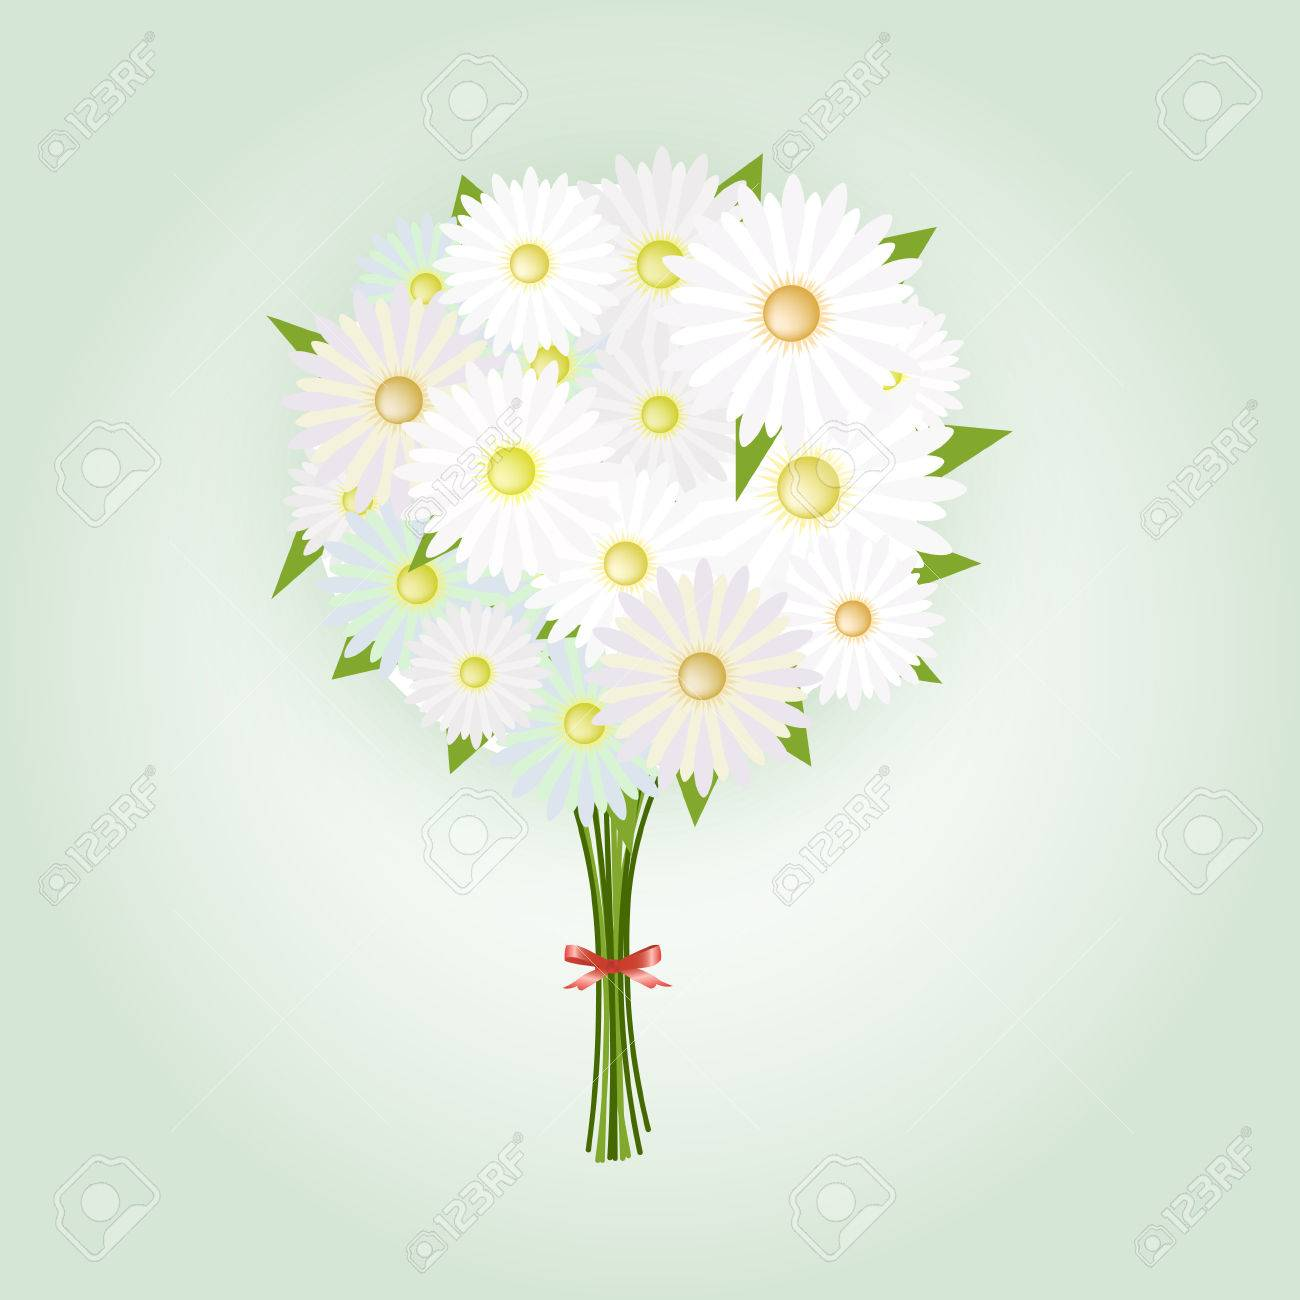 Chamomile Flower or White Daisy Daisy Bouquet.